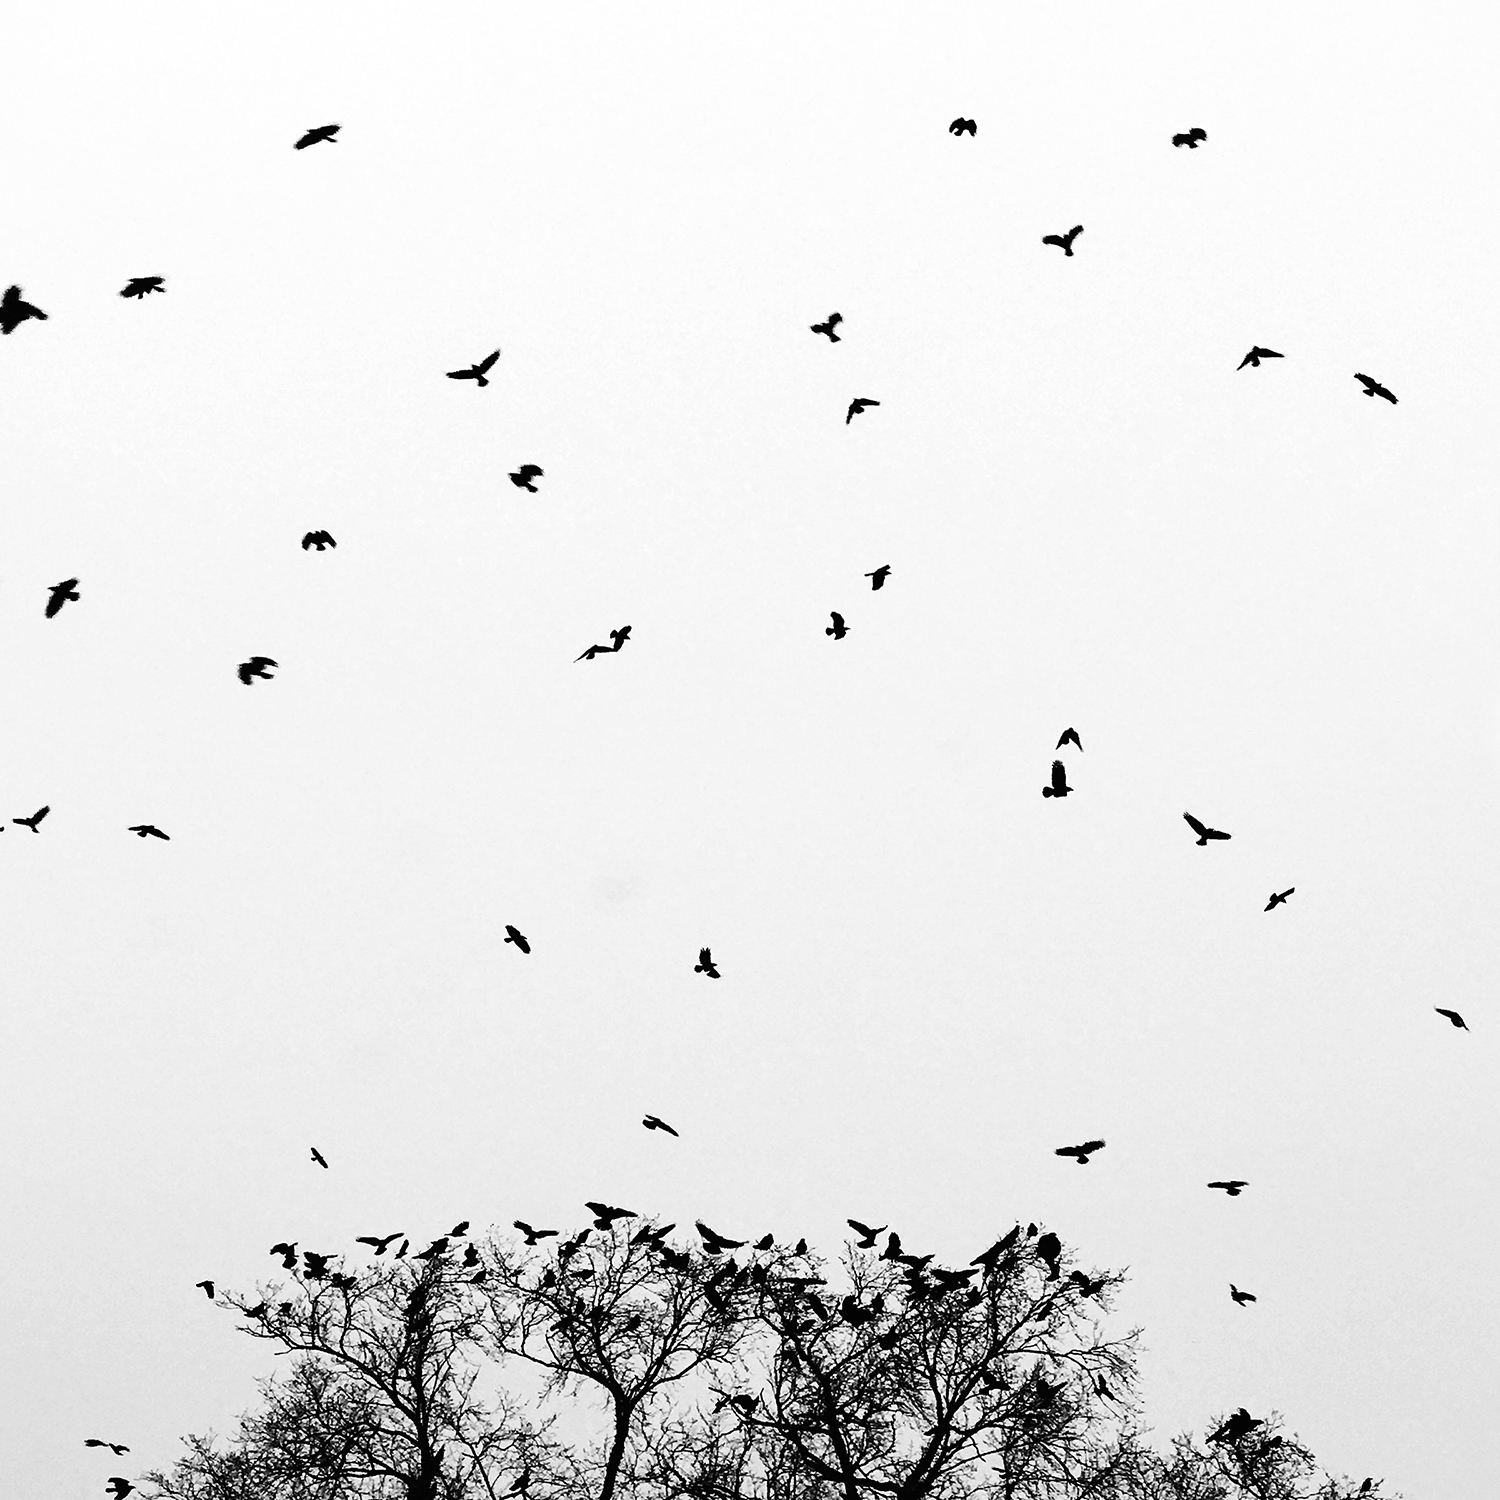 iphone7plus_crows_1500.jpg